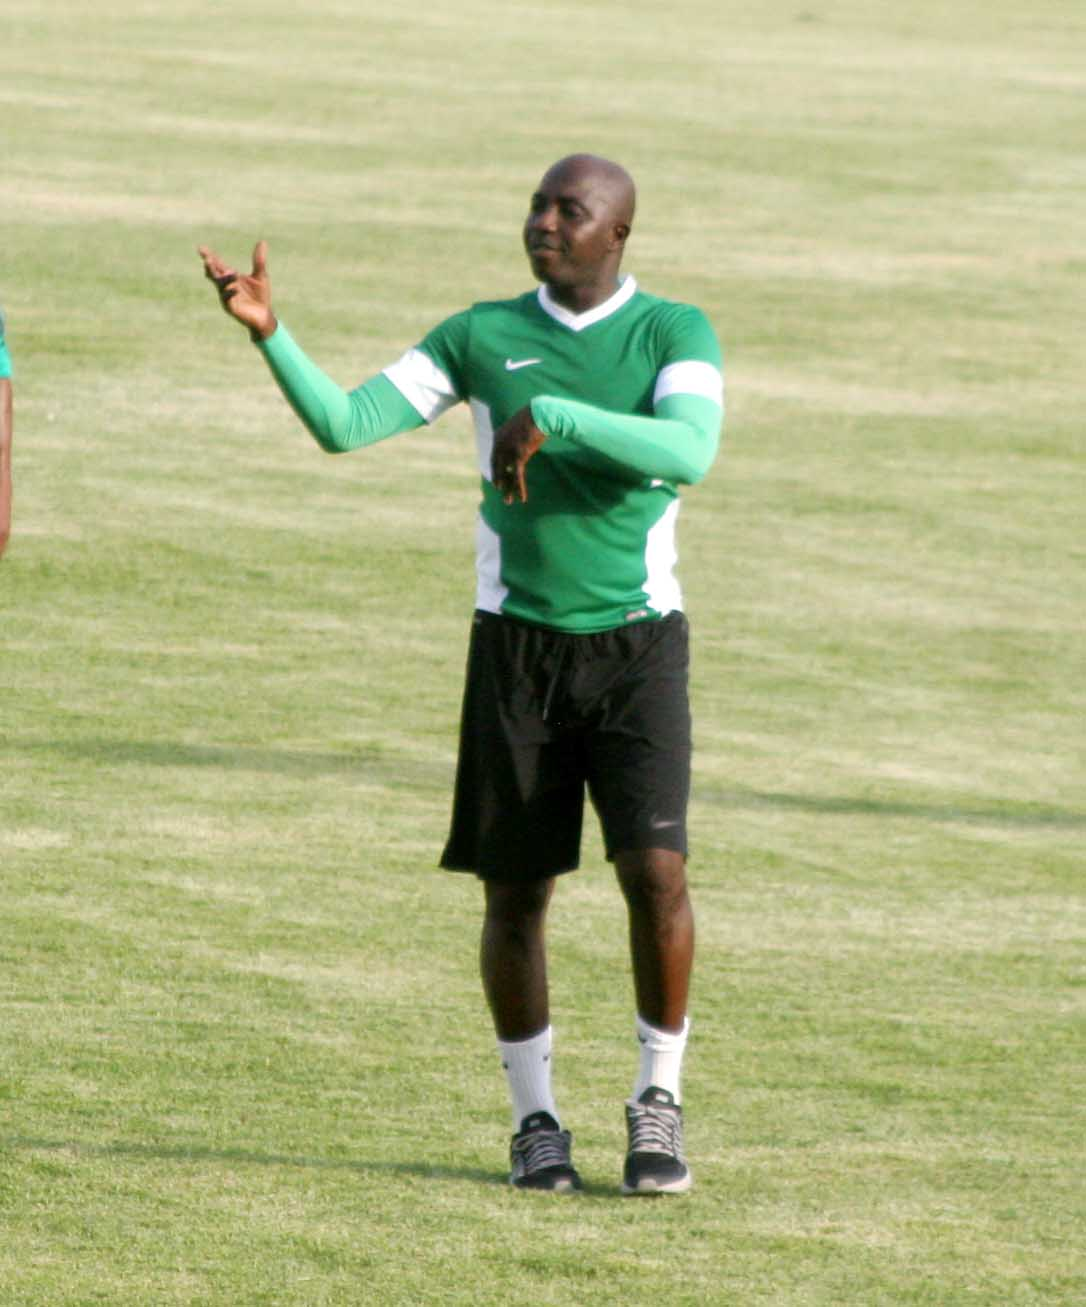 Suwon: Siasia Vows To Change Line-Up Vs Denmark, Avoid Defeat